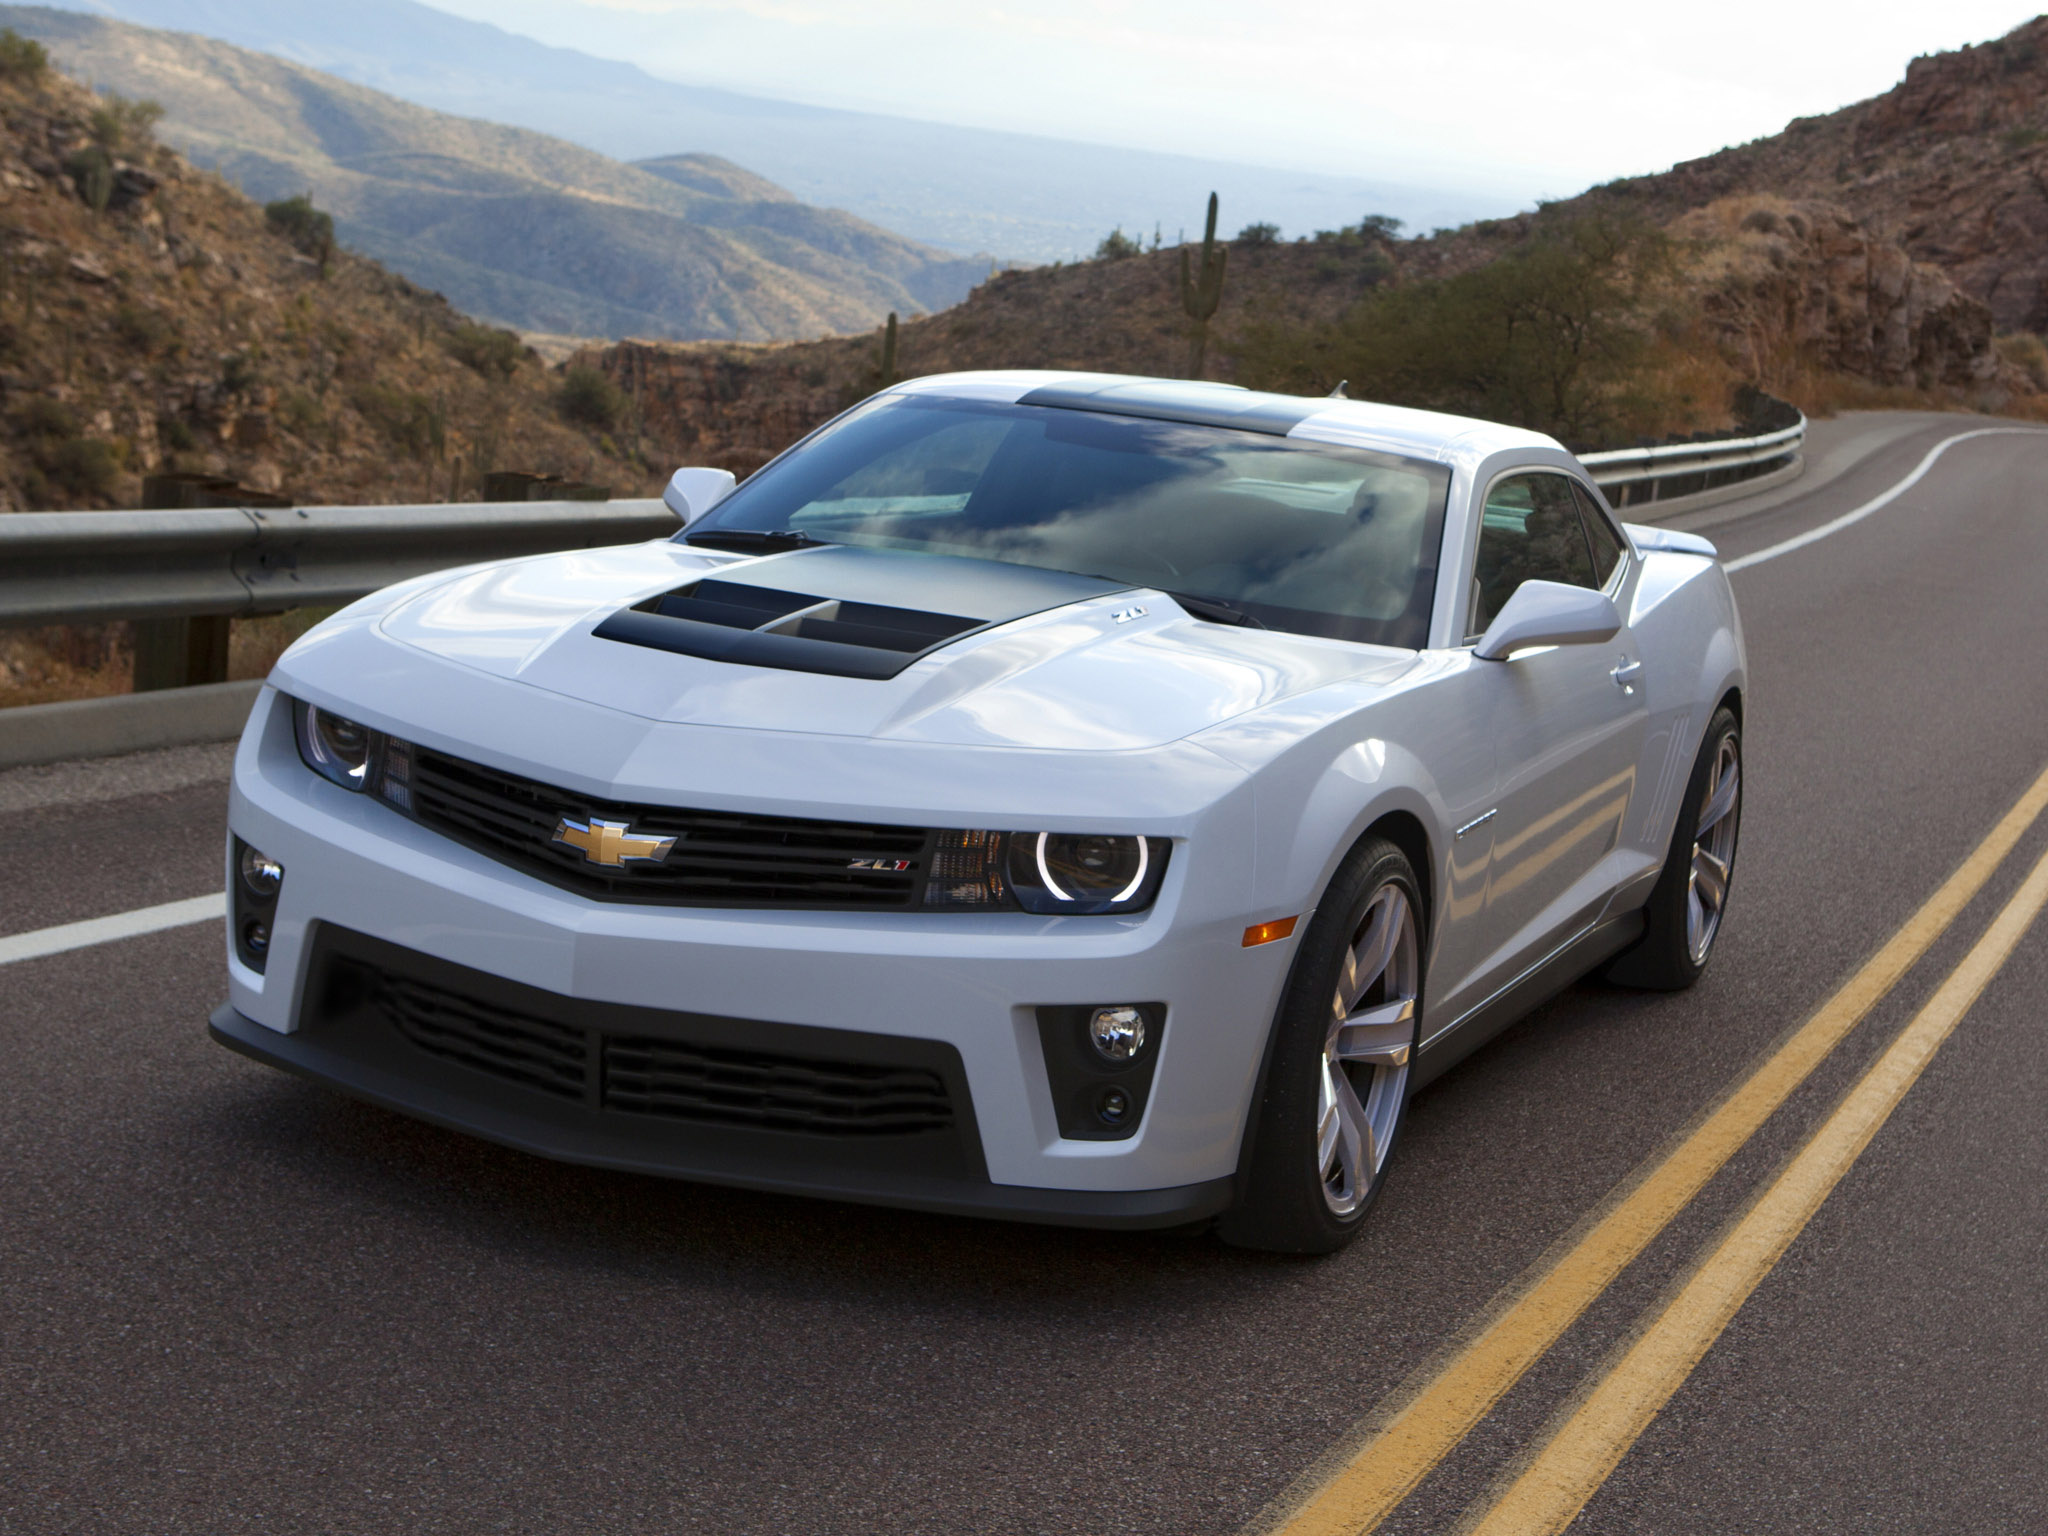 Chevrolet Camaro Zl1 2011 Chevrolet Camaro Zl1 2011 Photo